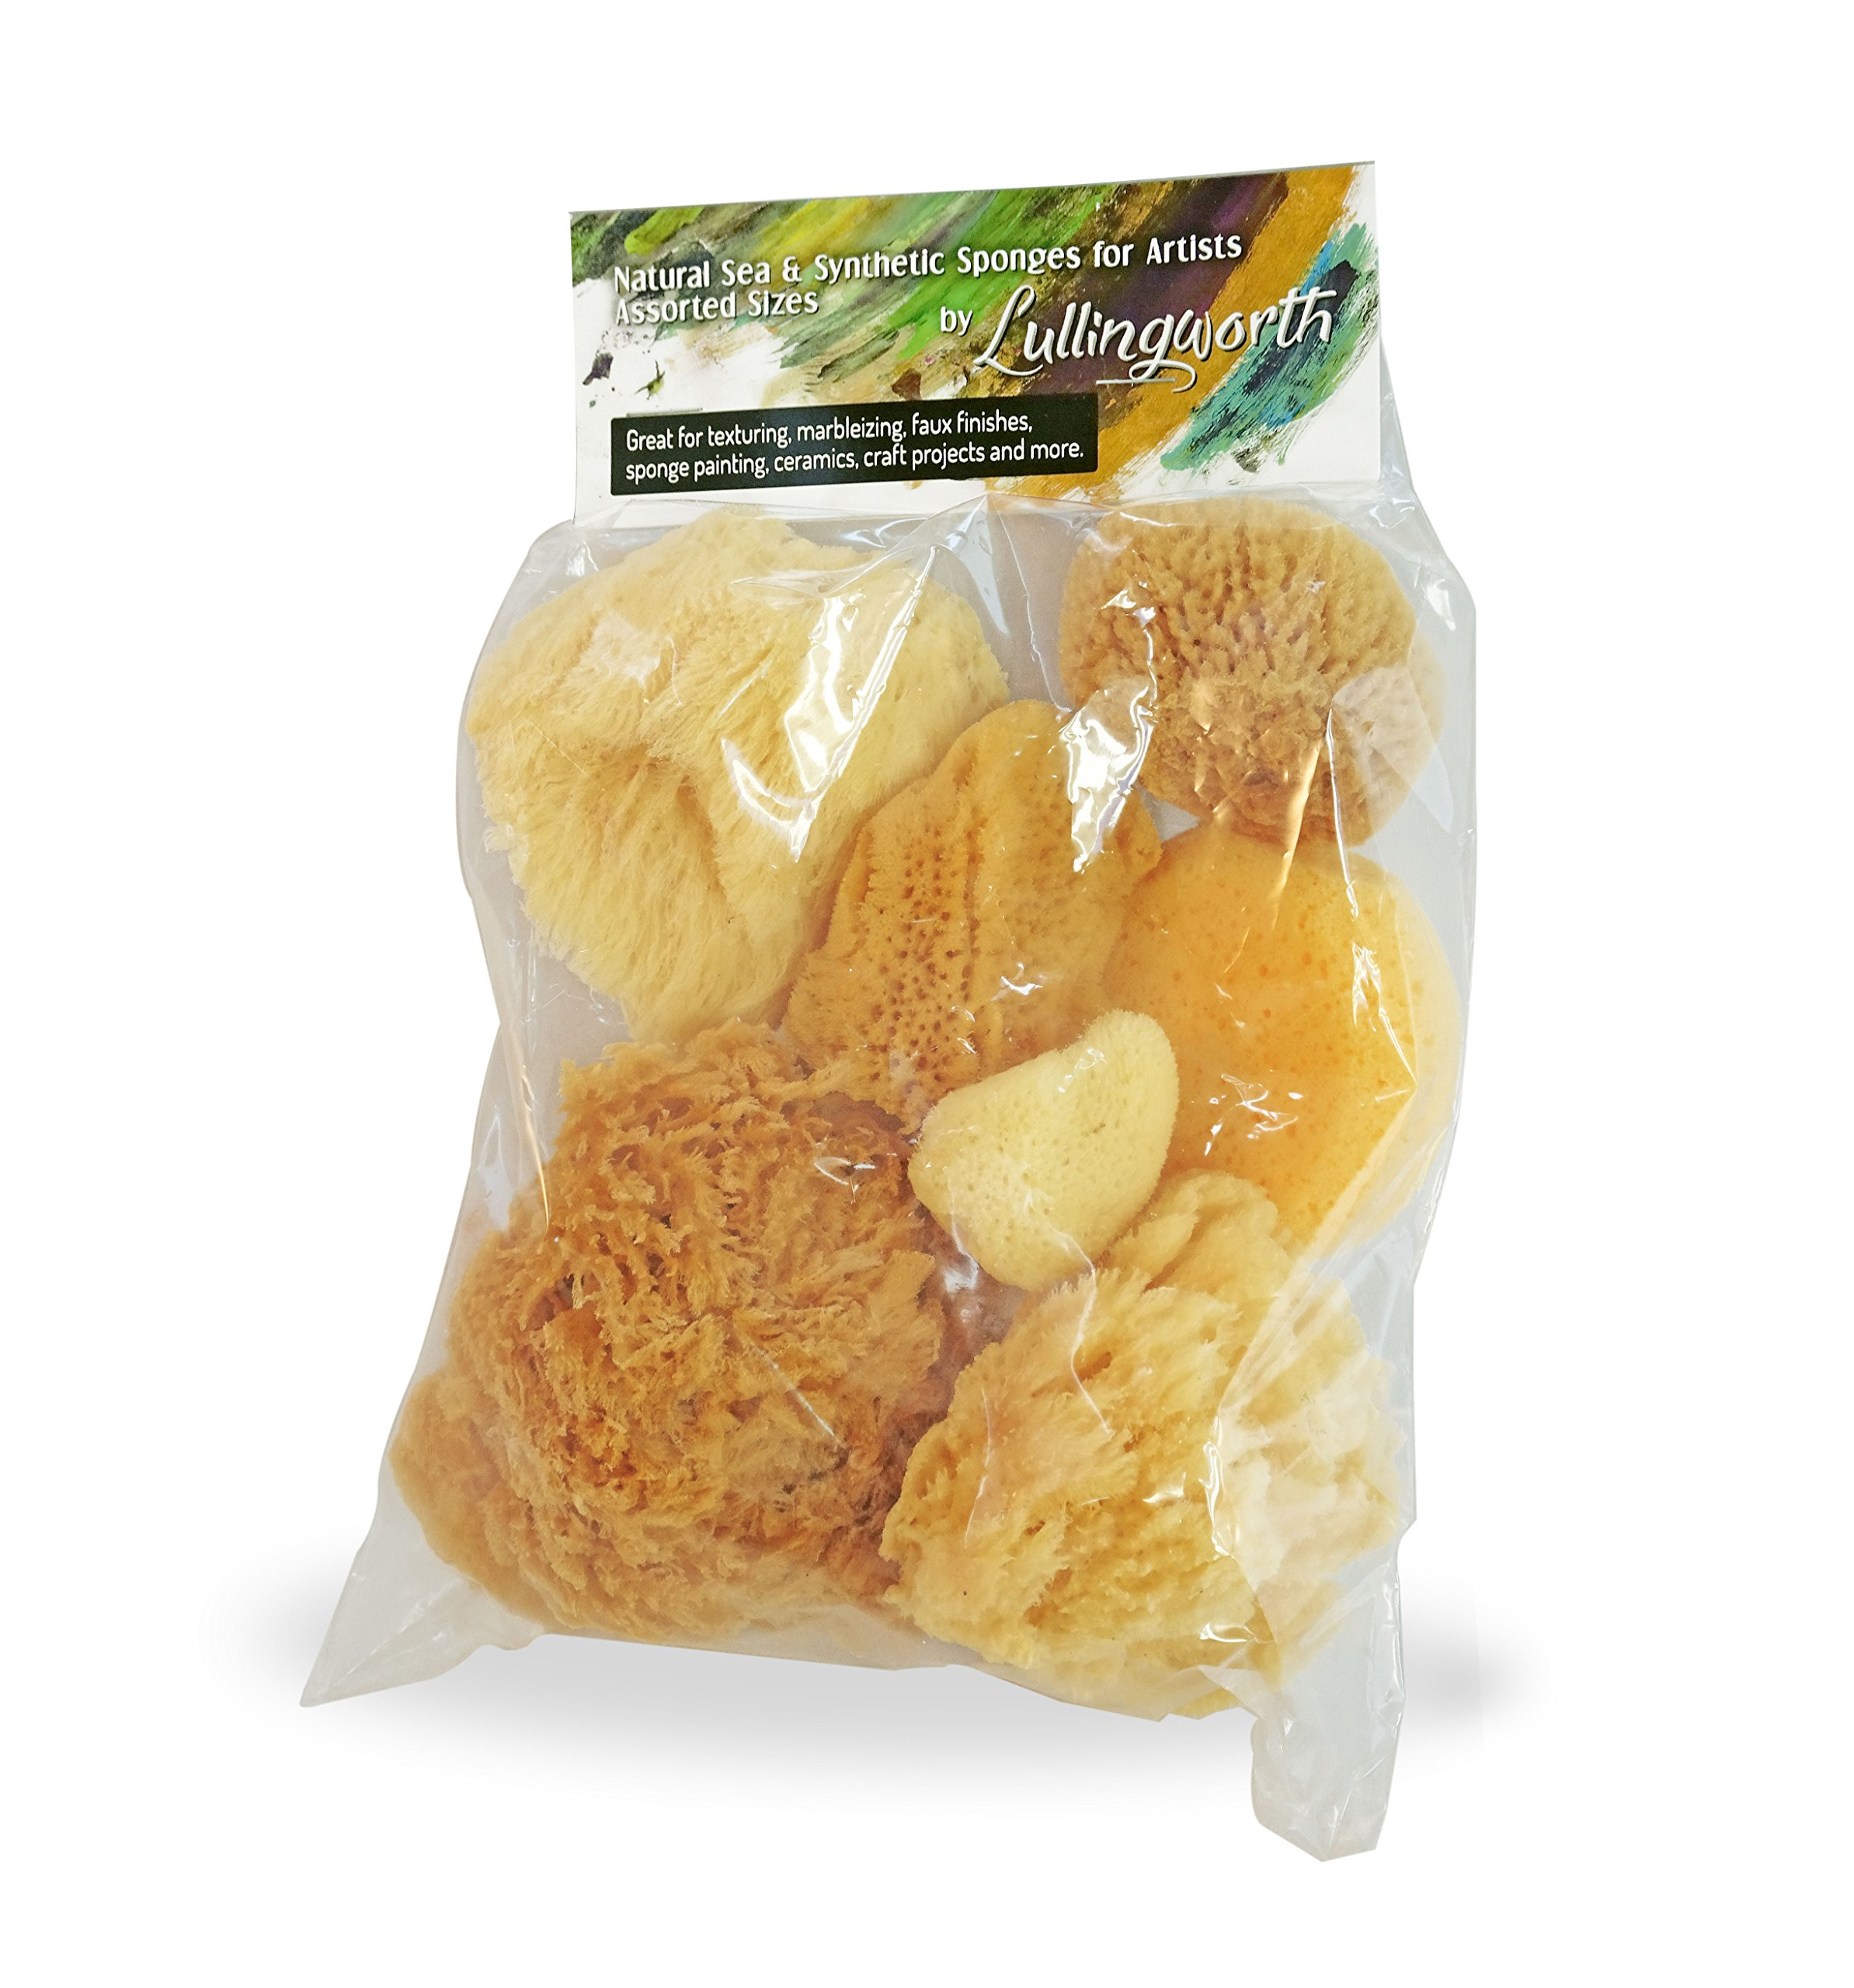 Natural Sea & Synthetic Sponges - Assorted Sizes 7pc Value Pack for Crafts & Artists: Great for Painting, Creative Hobbies, Art, Effects, Ceramics, Clay, Pottery by Lullingworth by Lullingworth